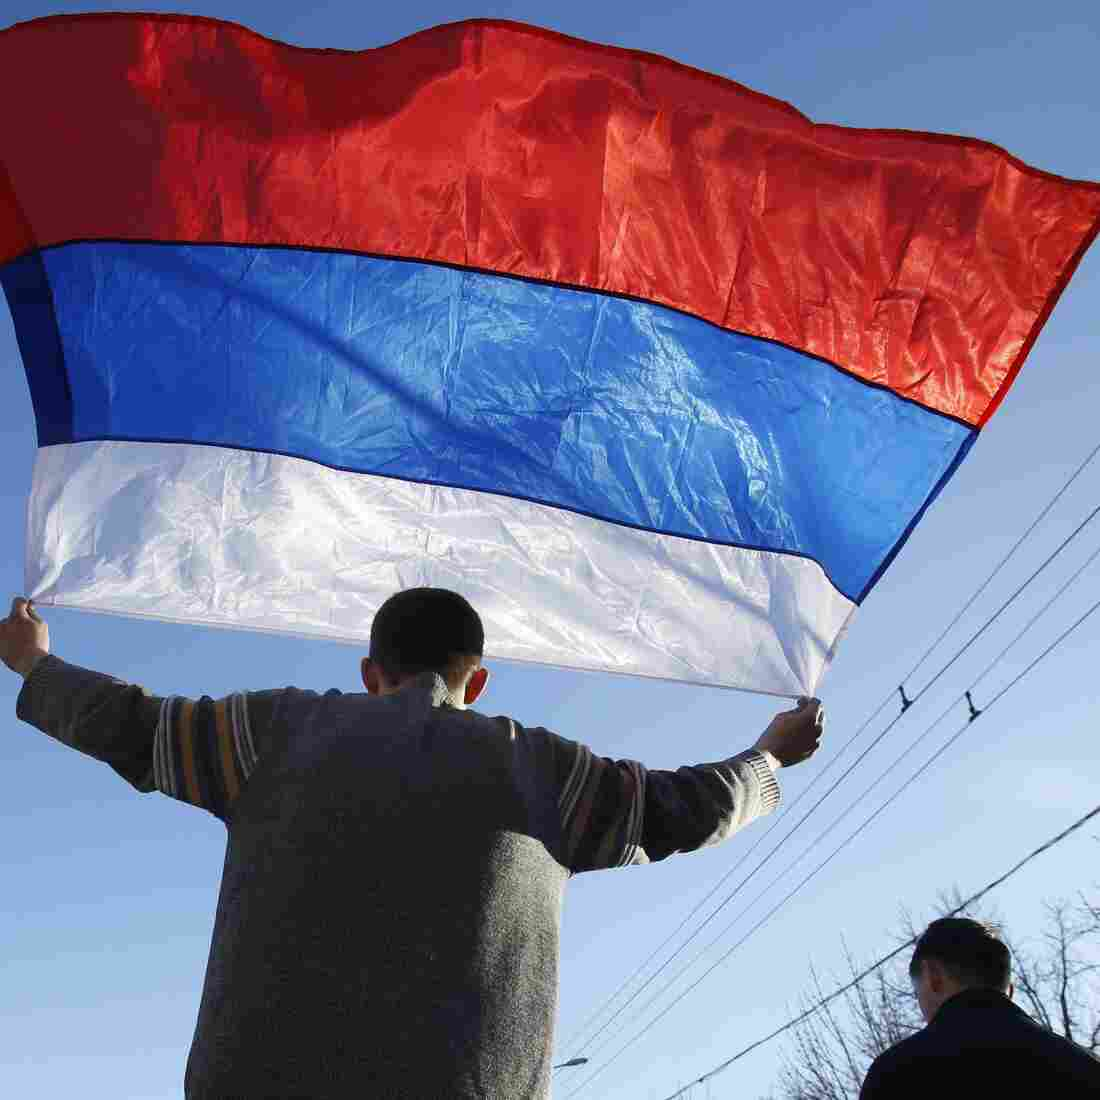 An activist carries a Russian flag during a rally on Sunday in eastern Ukraine.